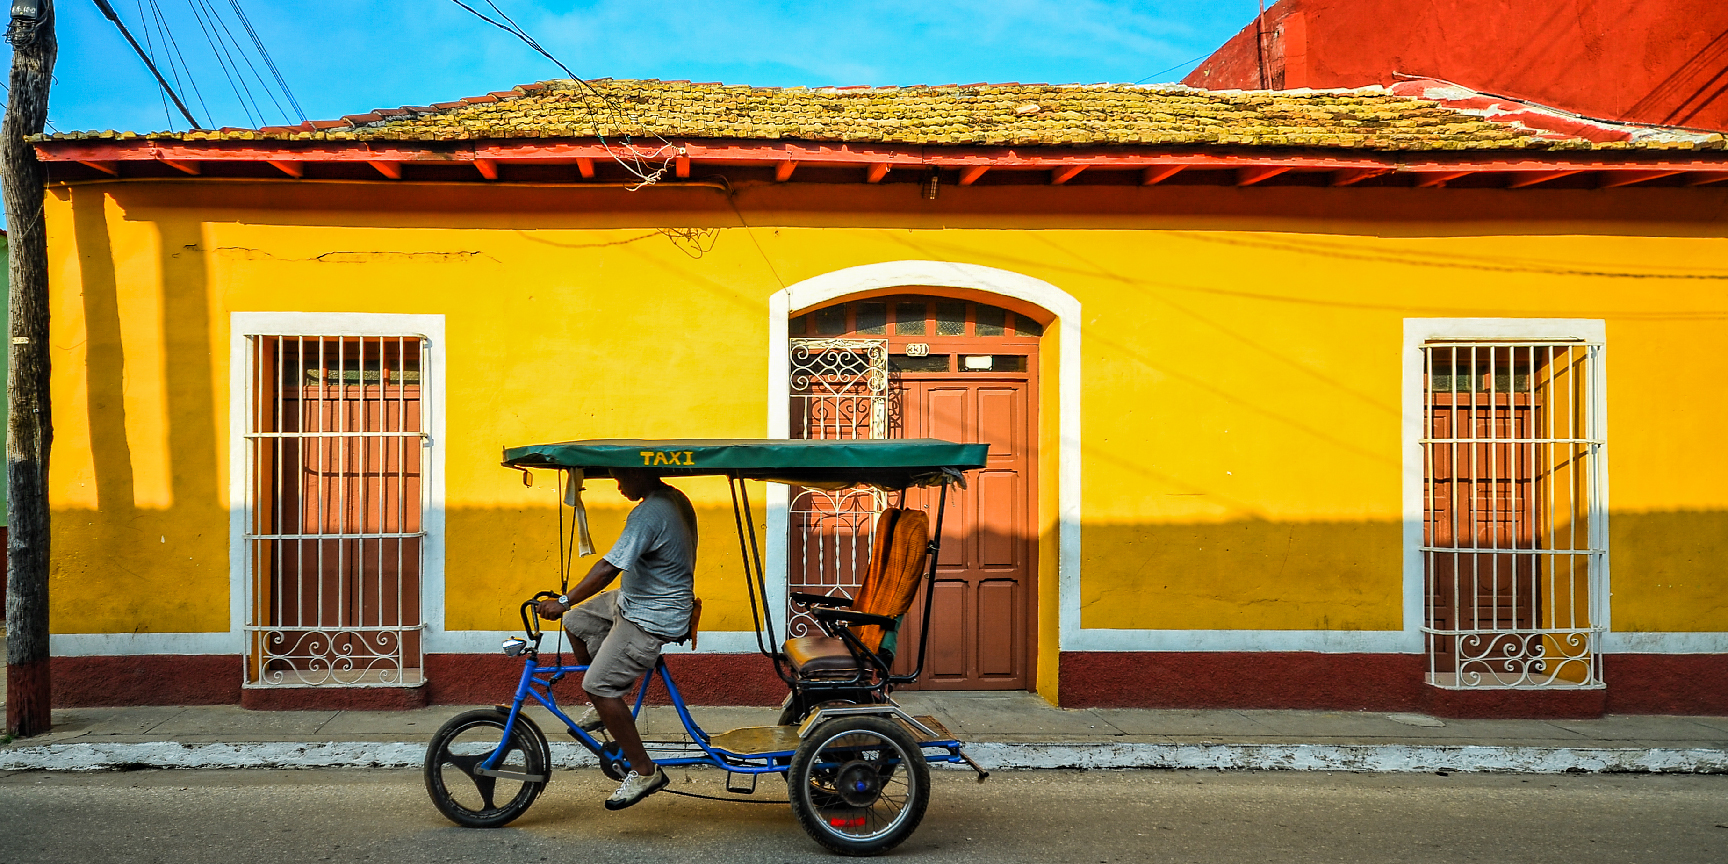 A pedal-powered taxi in Trinidad, Cuba